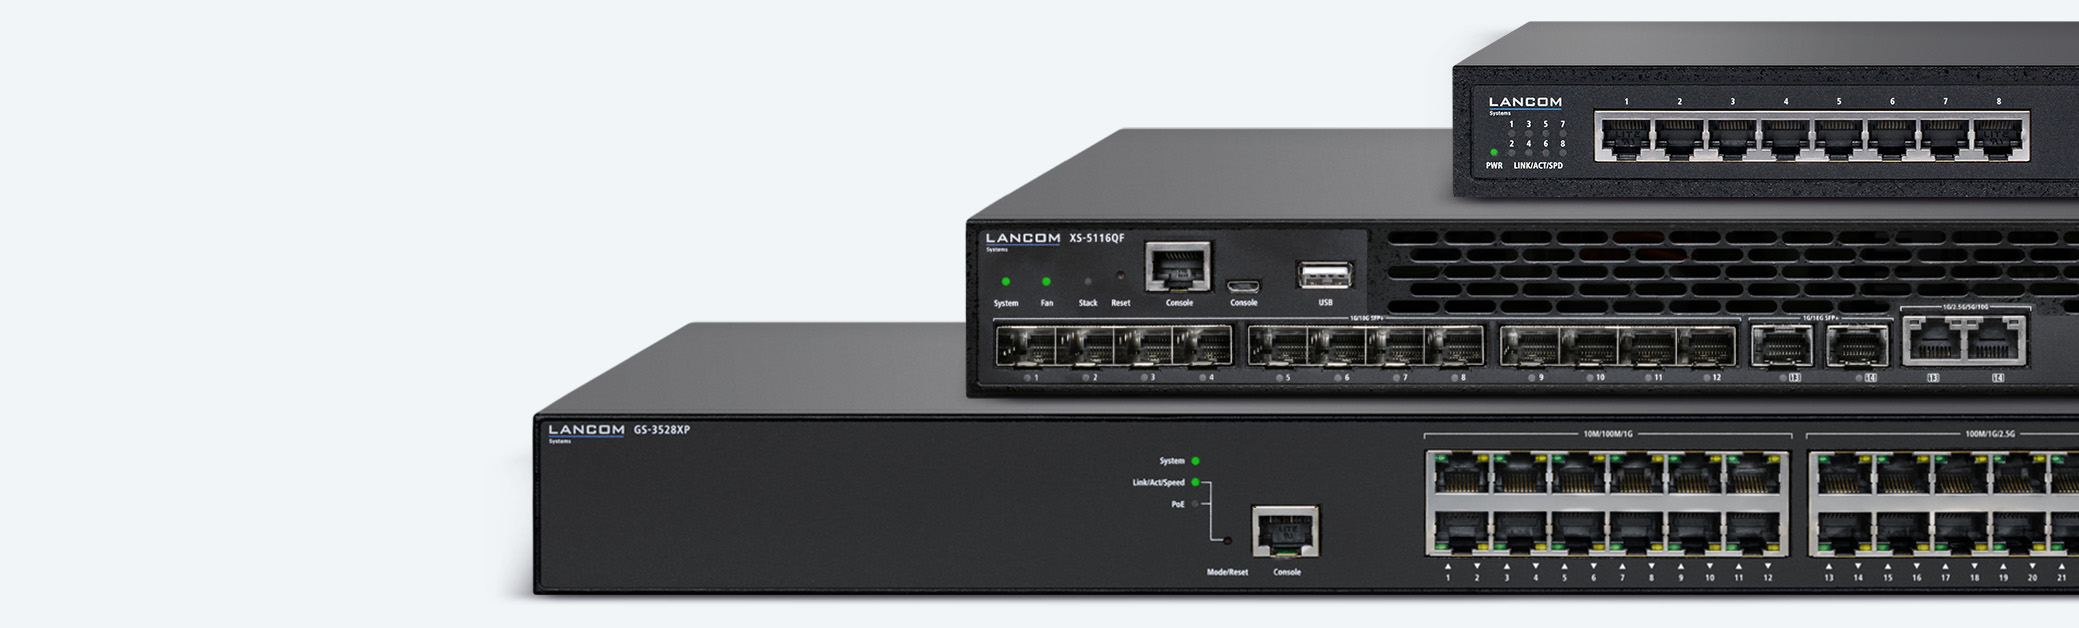 Collage of LANCOM Network Switches